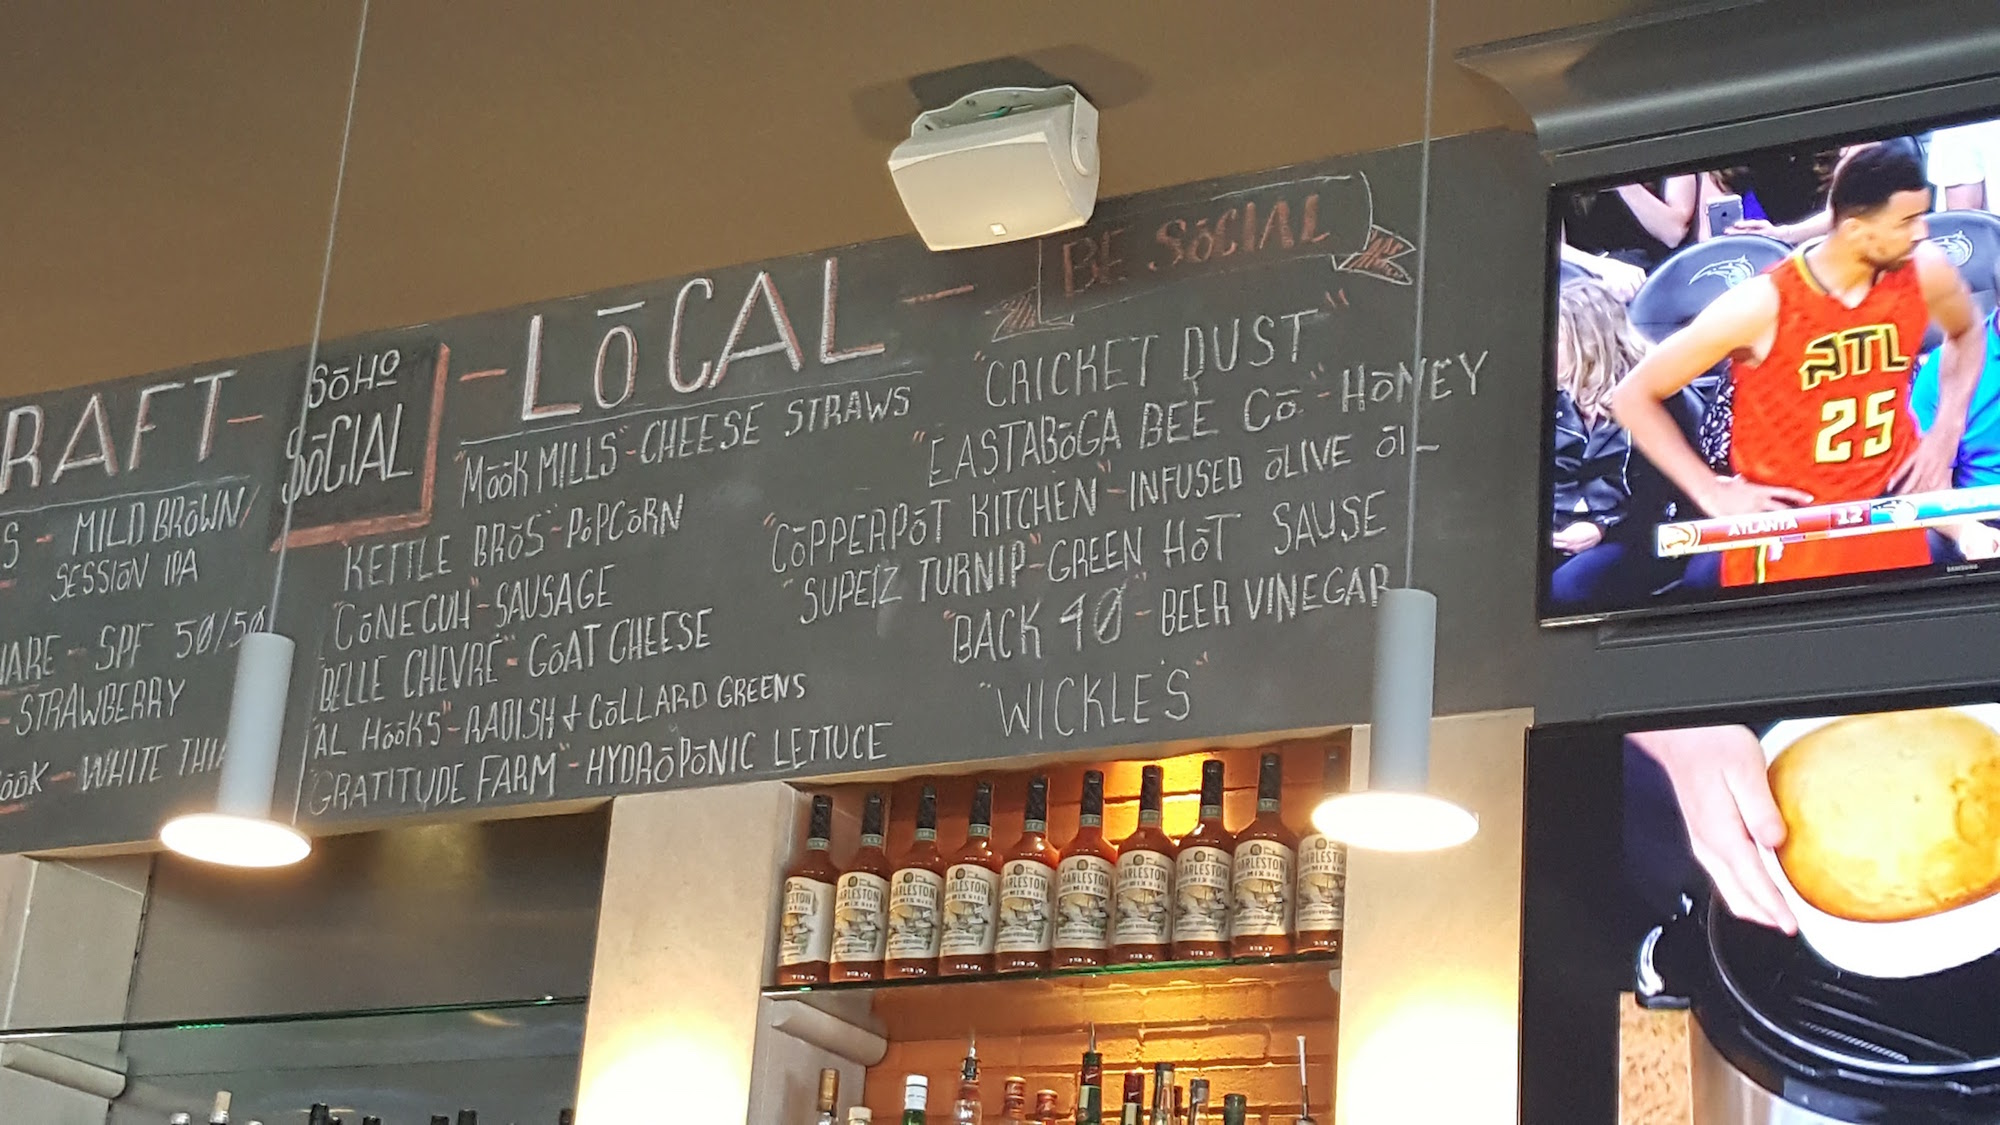 Local Chalkboard Menu